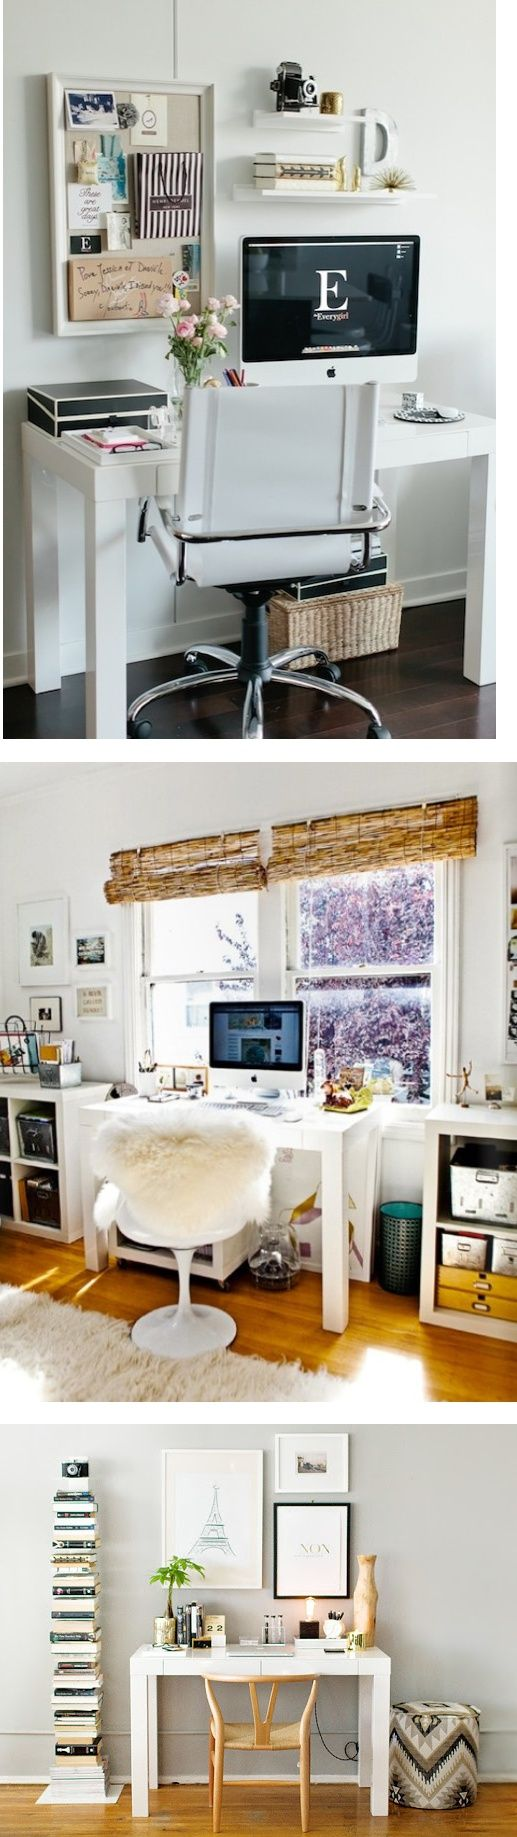 Best 25+ Desk for bedroom ideas on Pinterest | Teen bedroom desk ...